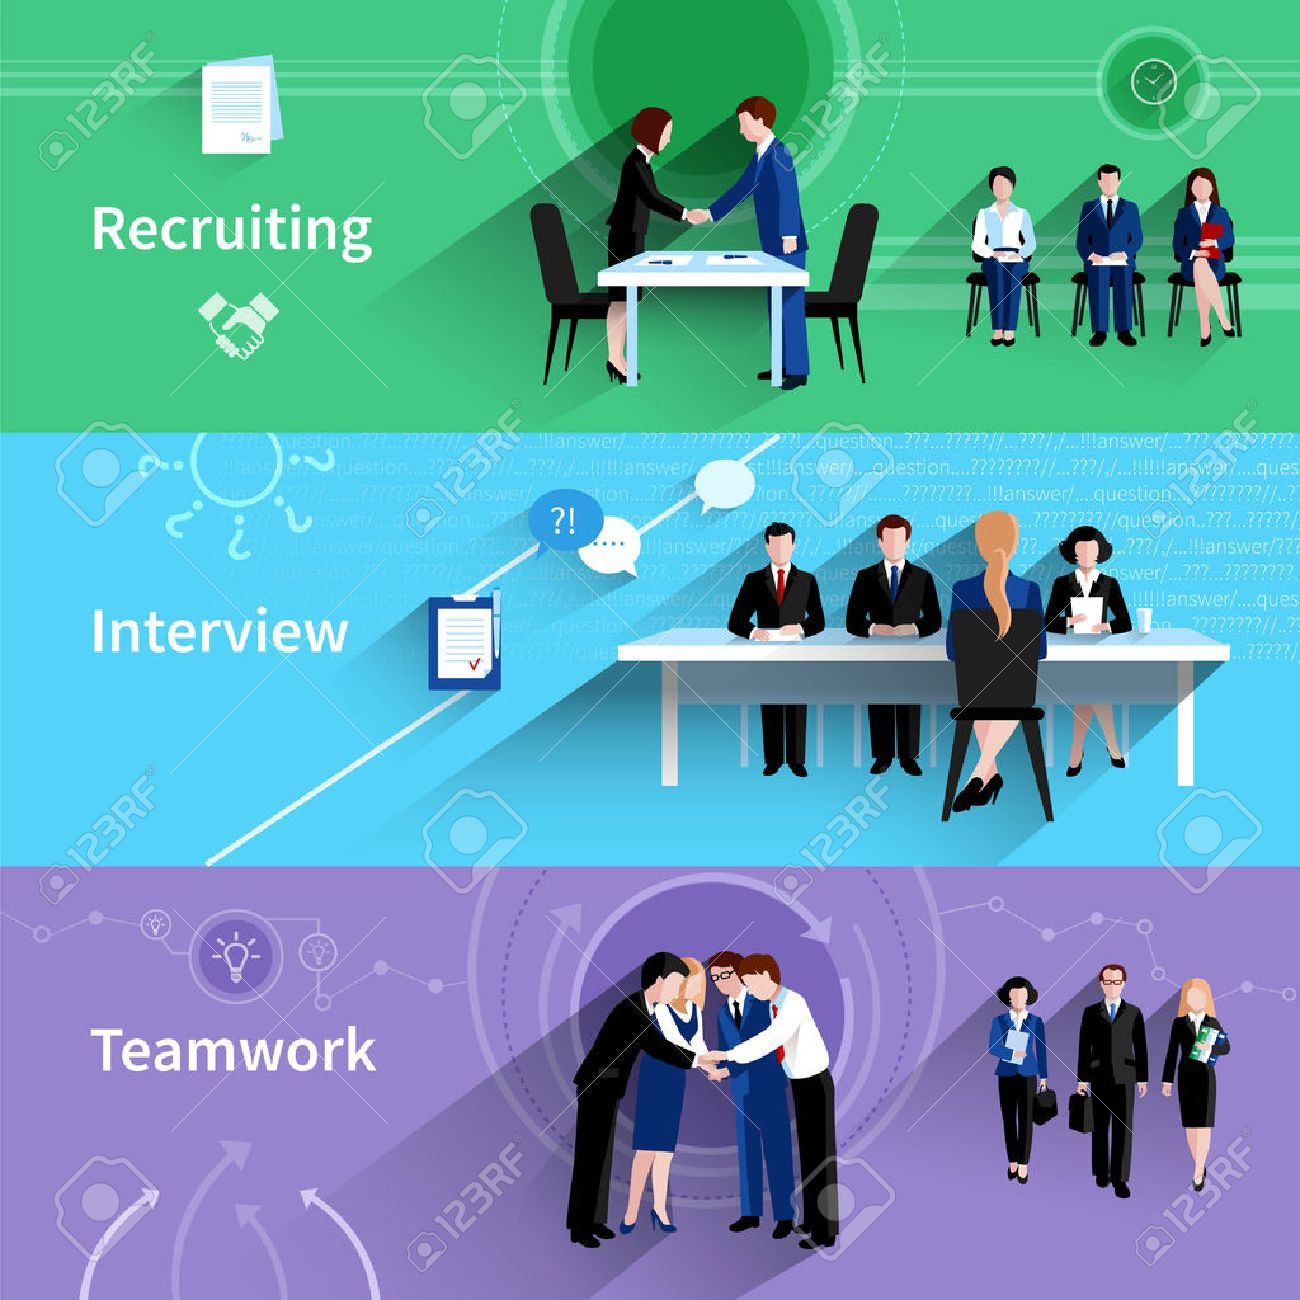 human resources personnel recruiting interview and teamwork 3 human resources personnel recruiting interview and teamwork 3 flat horizontal banners abstract slant shadow isolated vector